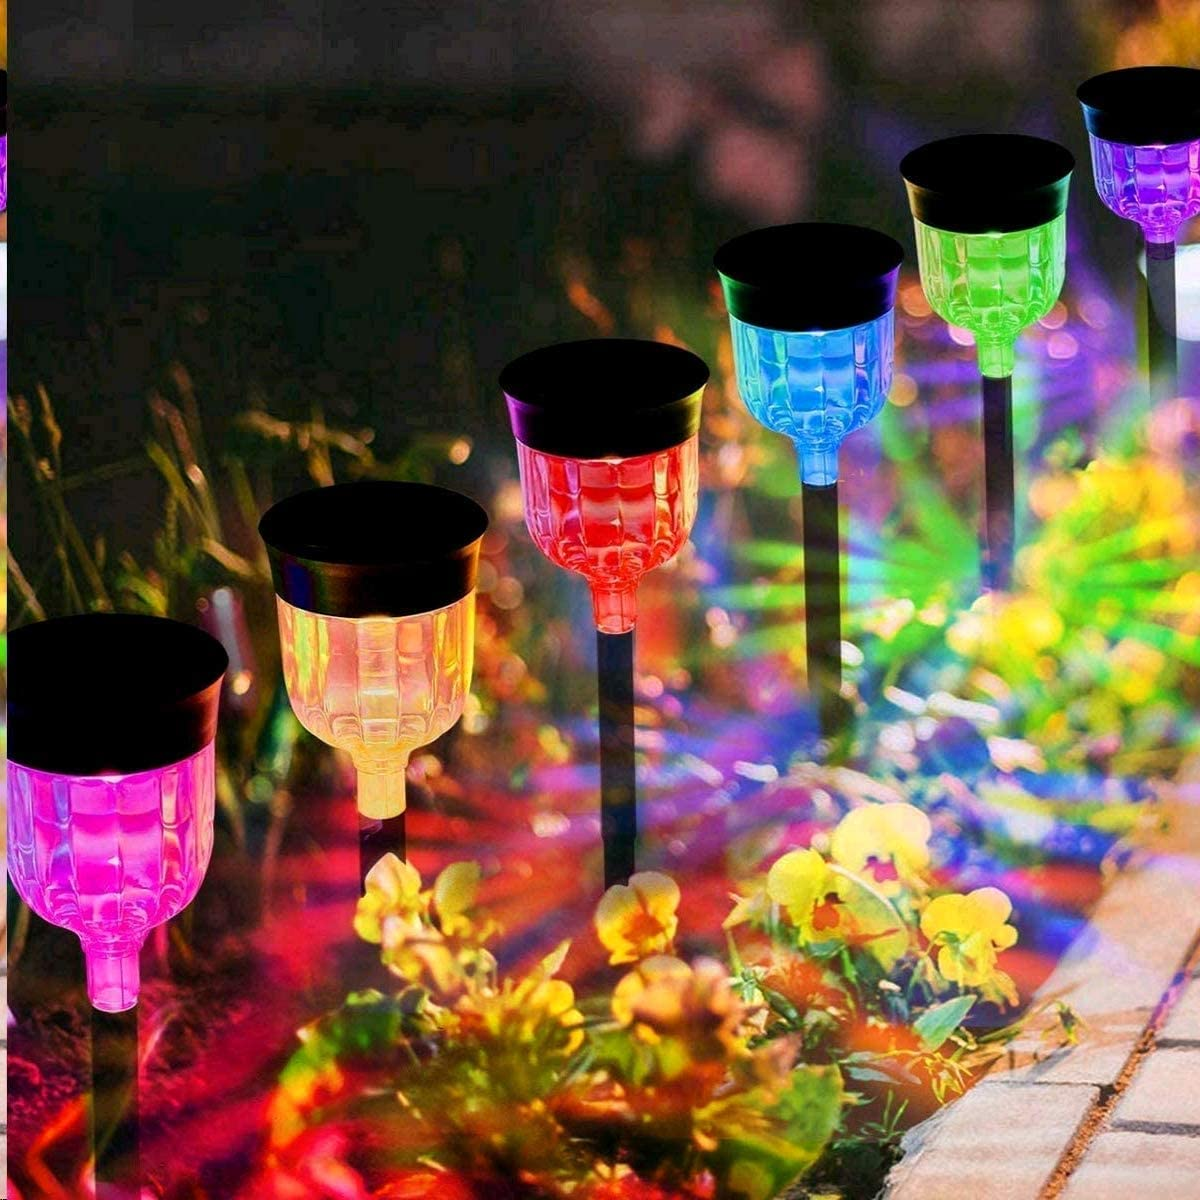 Solar Garden Lights Colorize,YUJENY Waterproof Solar Garden Lights (6 Units) Color Changing Solar Landscape Path Lights Auto On/Off for Yard Lawn Patio Walkway Sidewalk Driveway